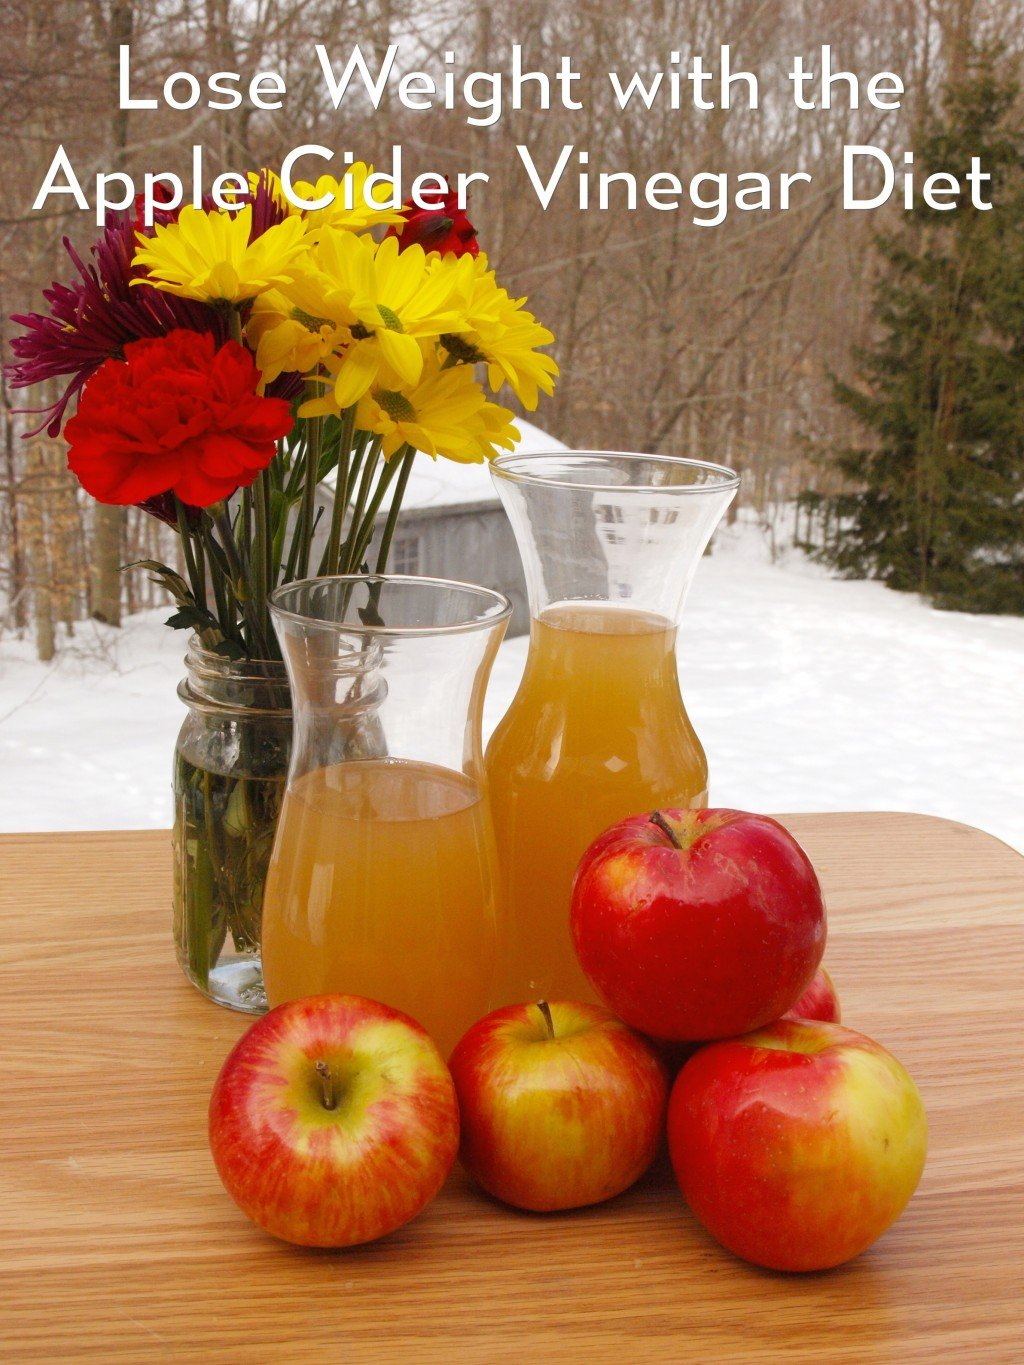 How apple cider vinegar can be useful as weight loss solution?